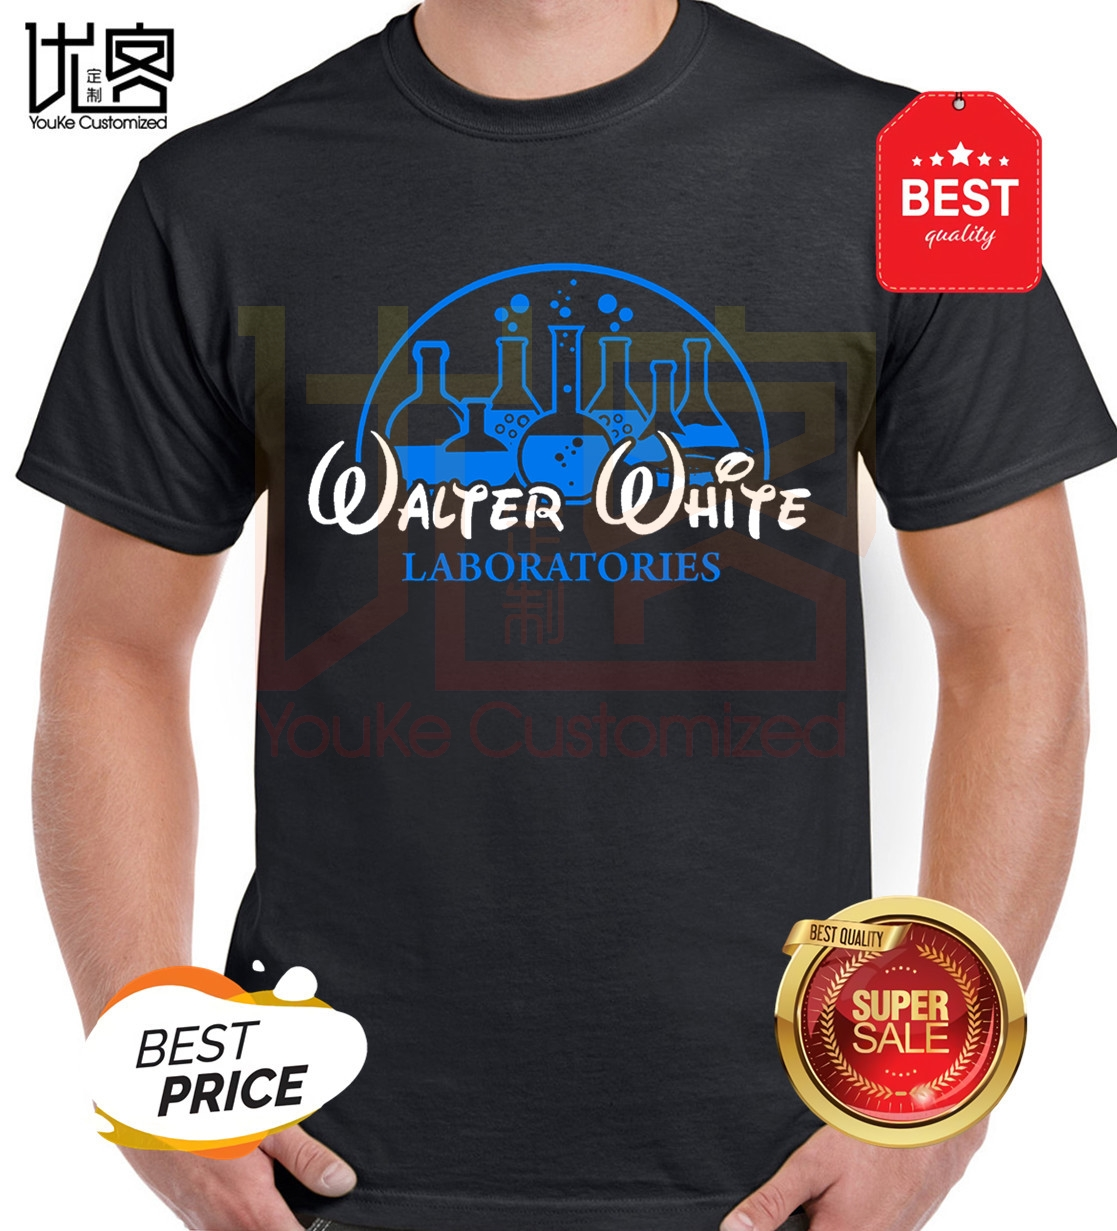 Walter White Laboratories T Shirt Breaking Bad Heisenberg Mr White 100% Cotton Tops Men's T-Shirts image